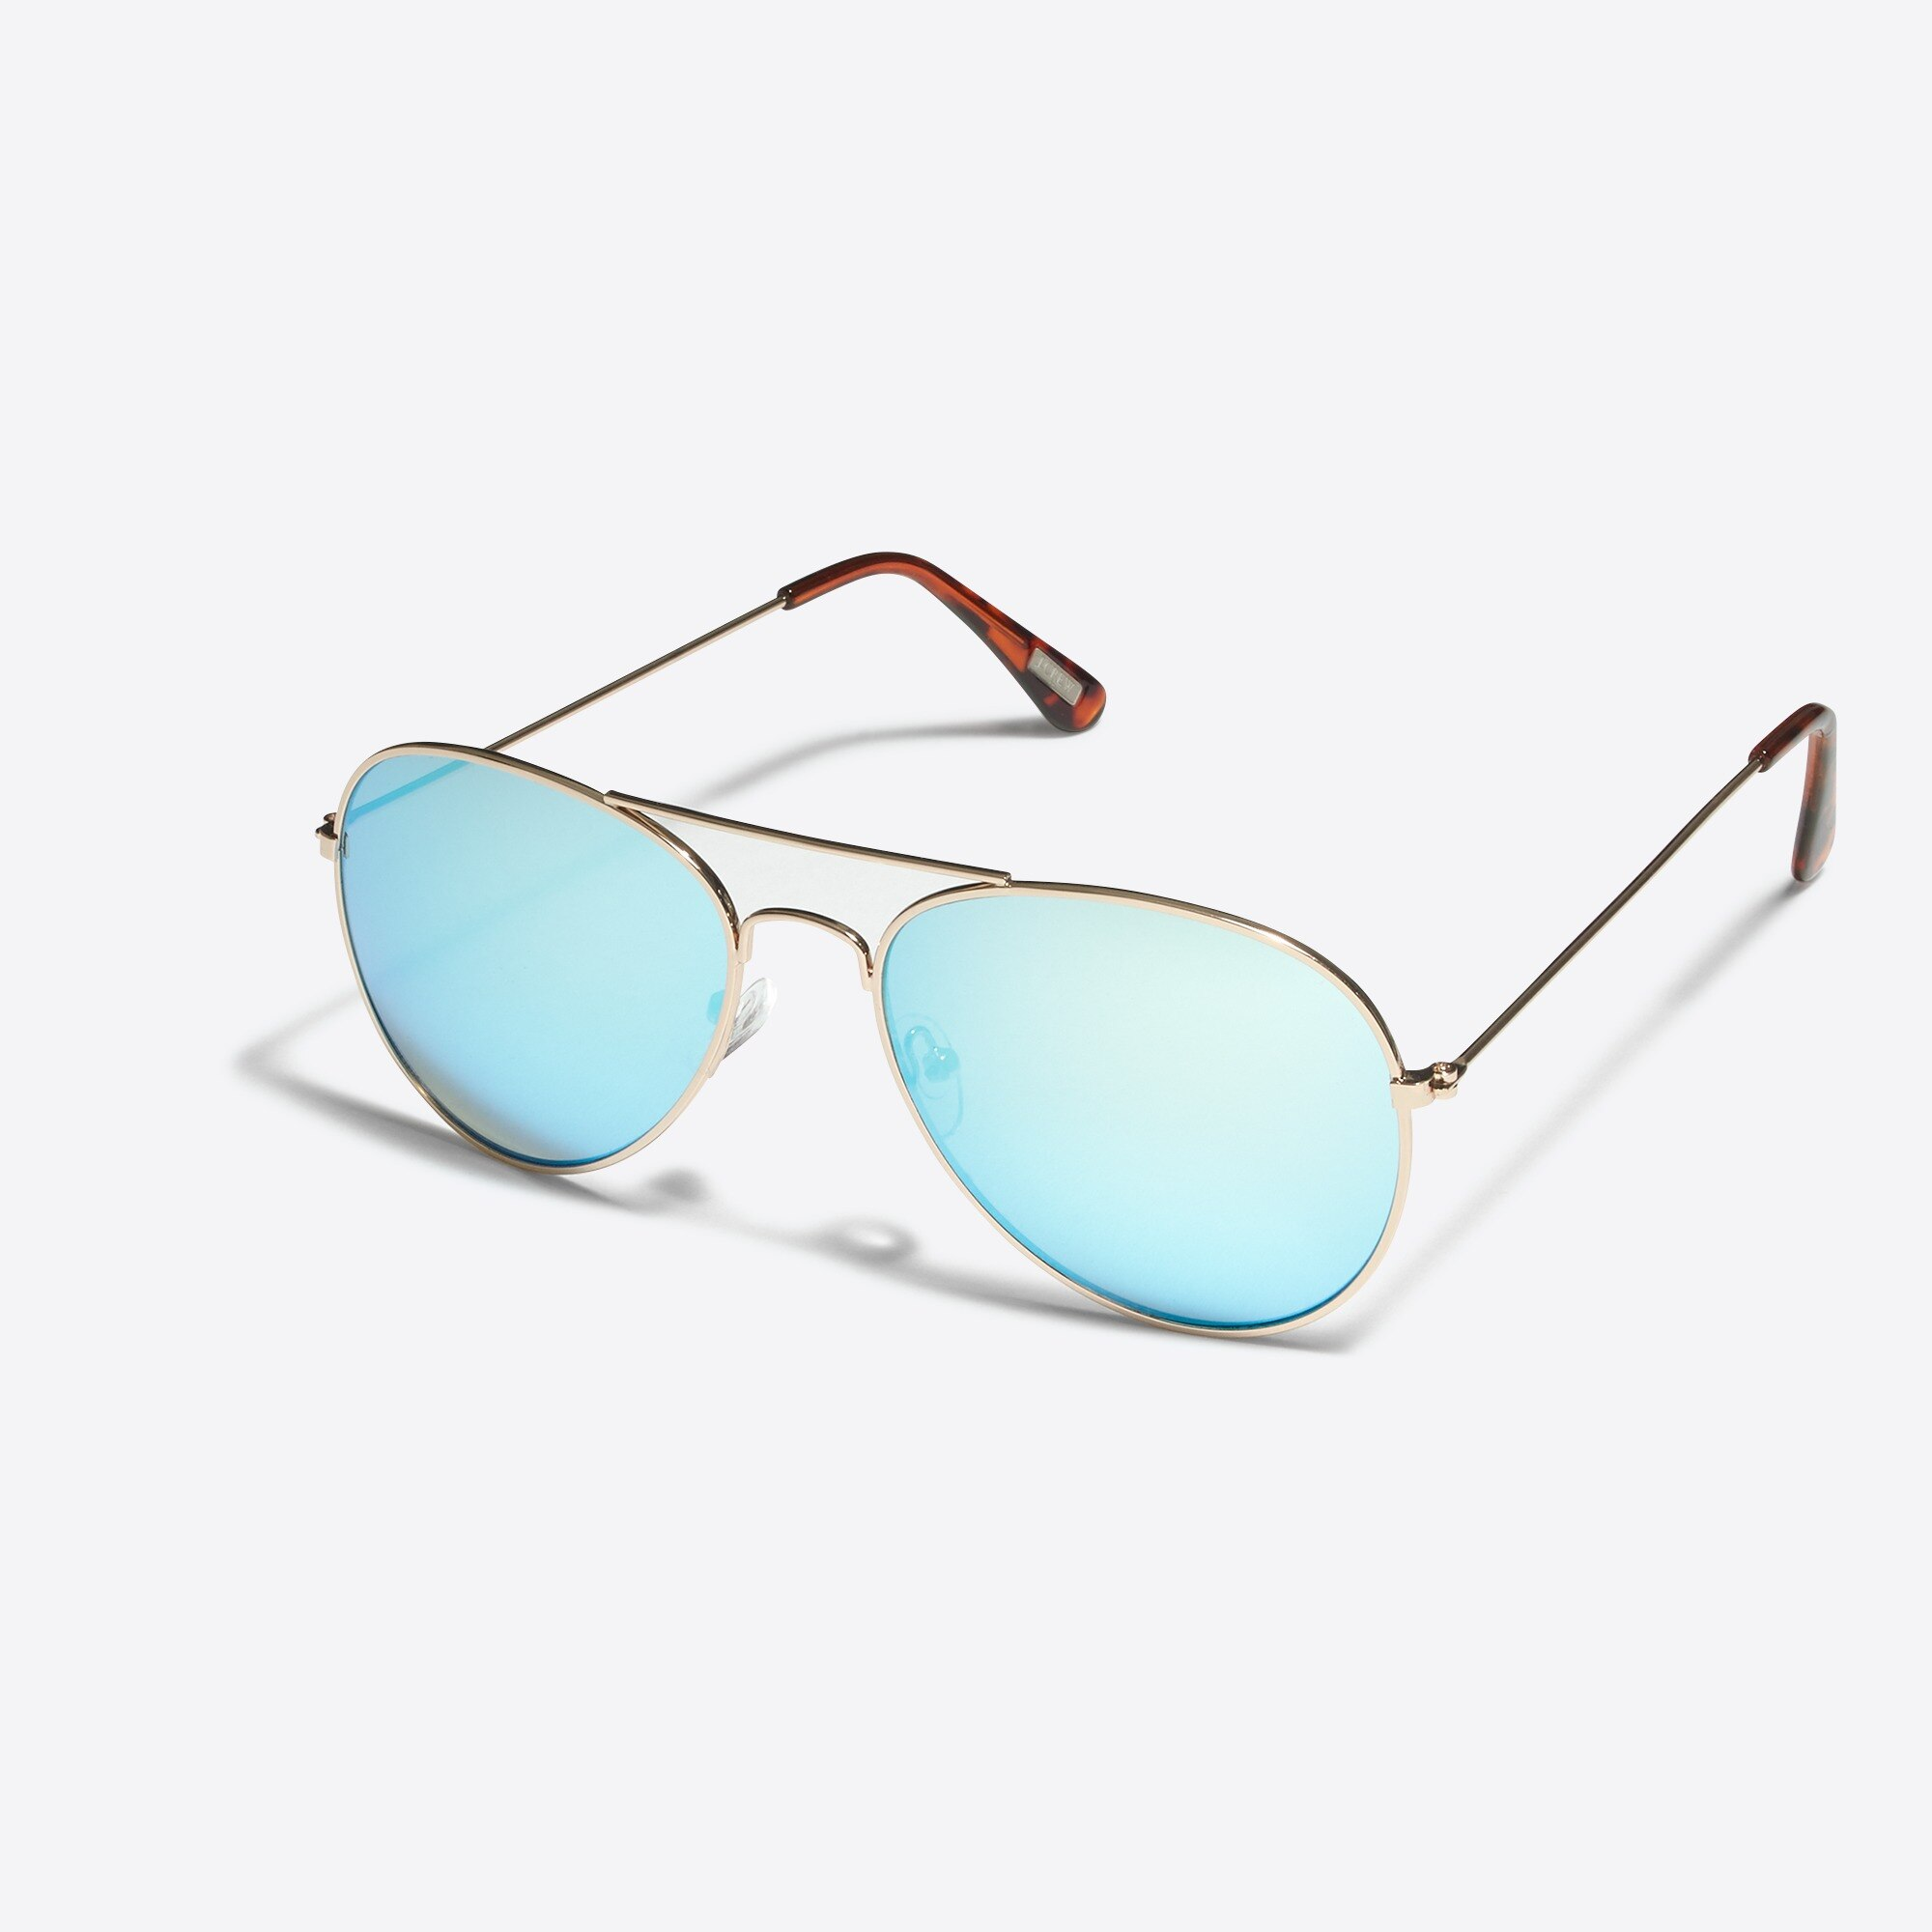 golden aviator sunglasses : factorymen sunglasses